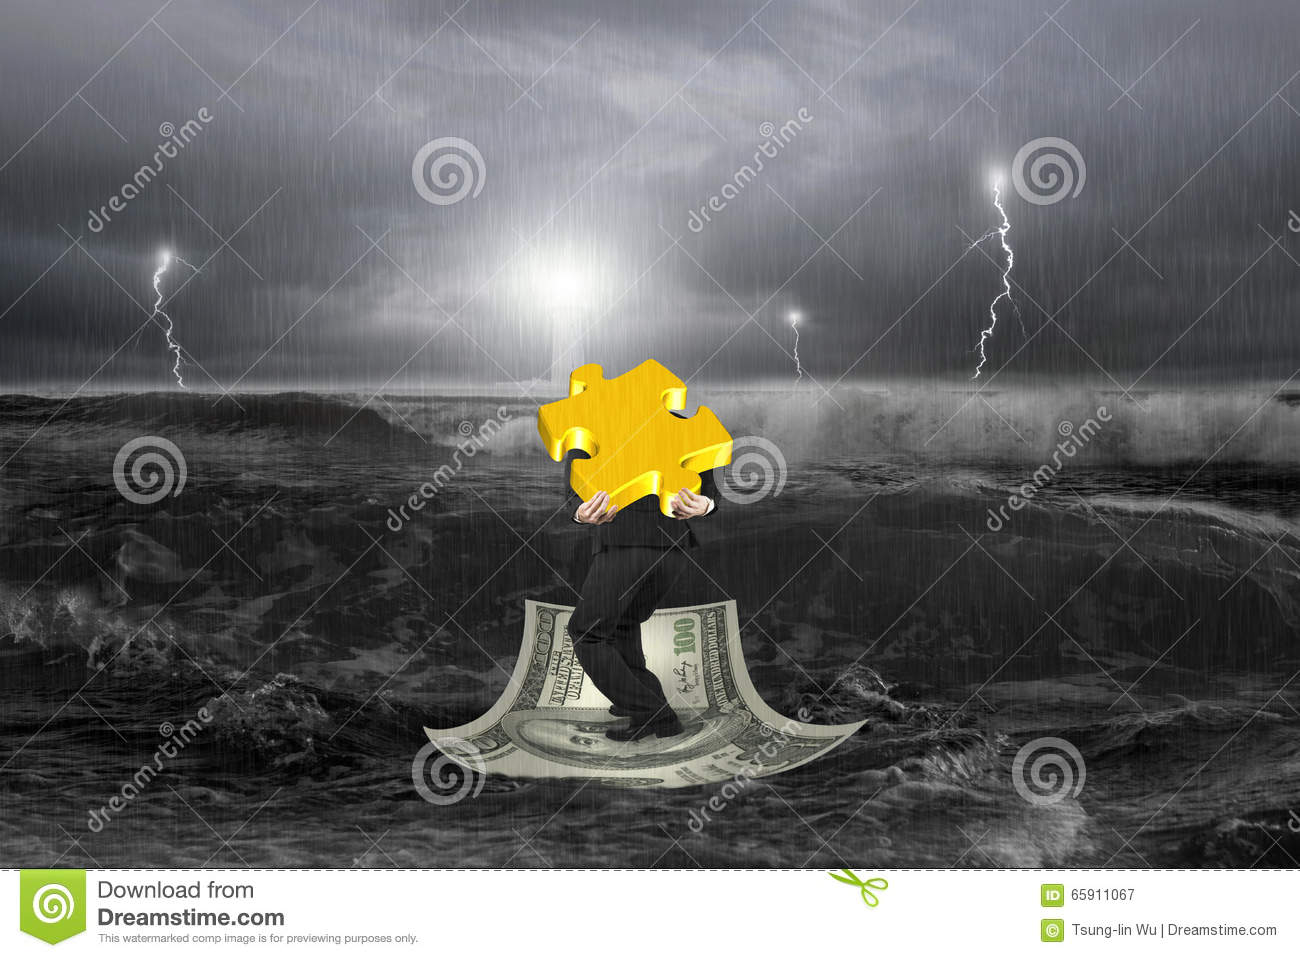 Businessman carrying 3D gold puzzle on money boat with storm